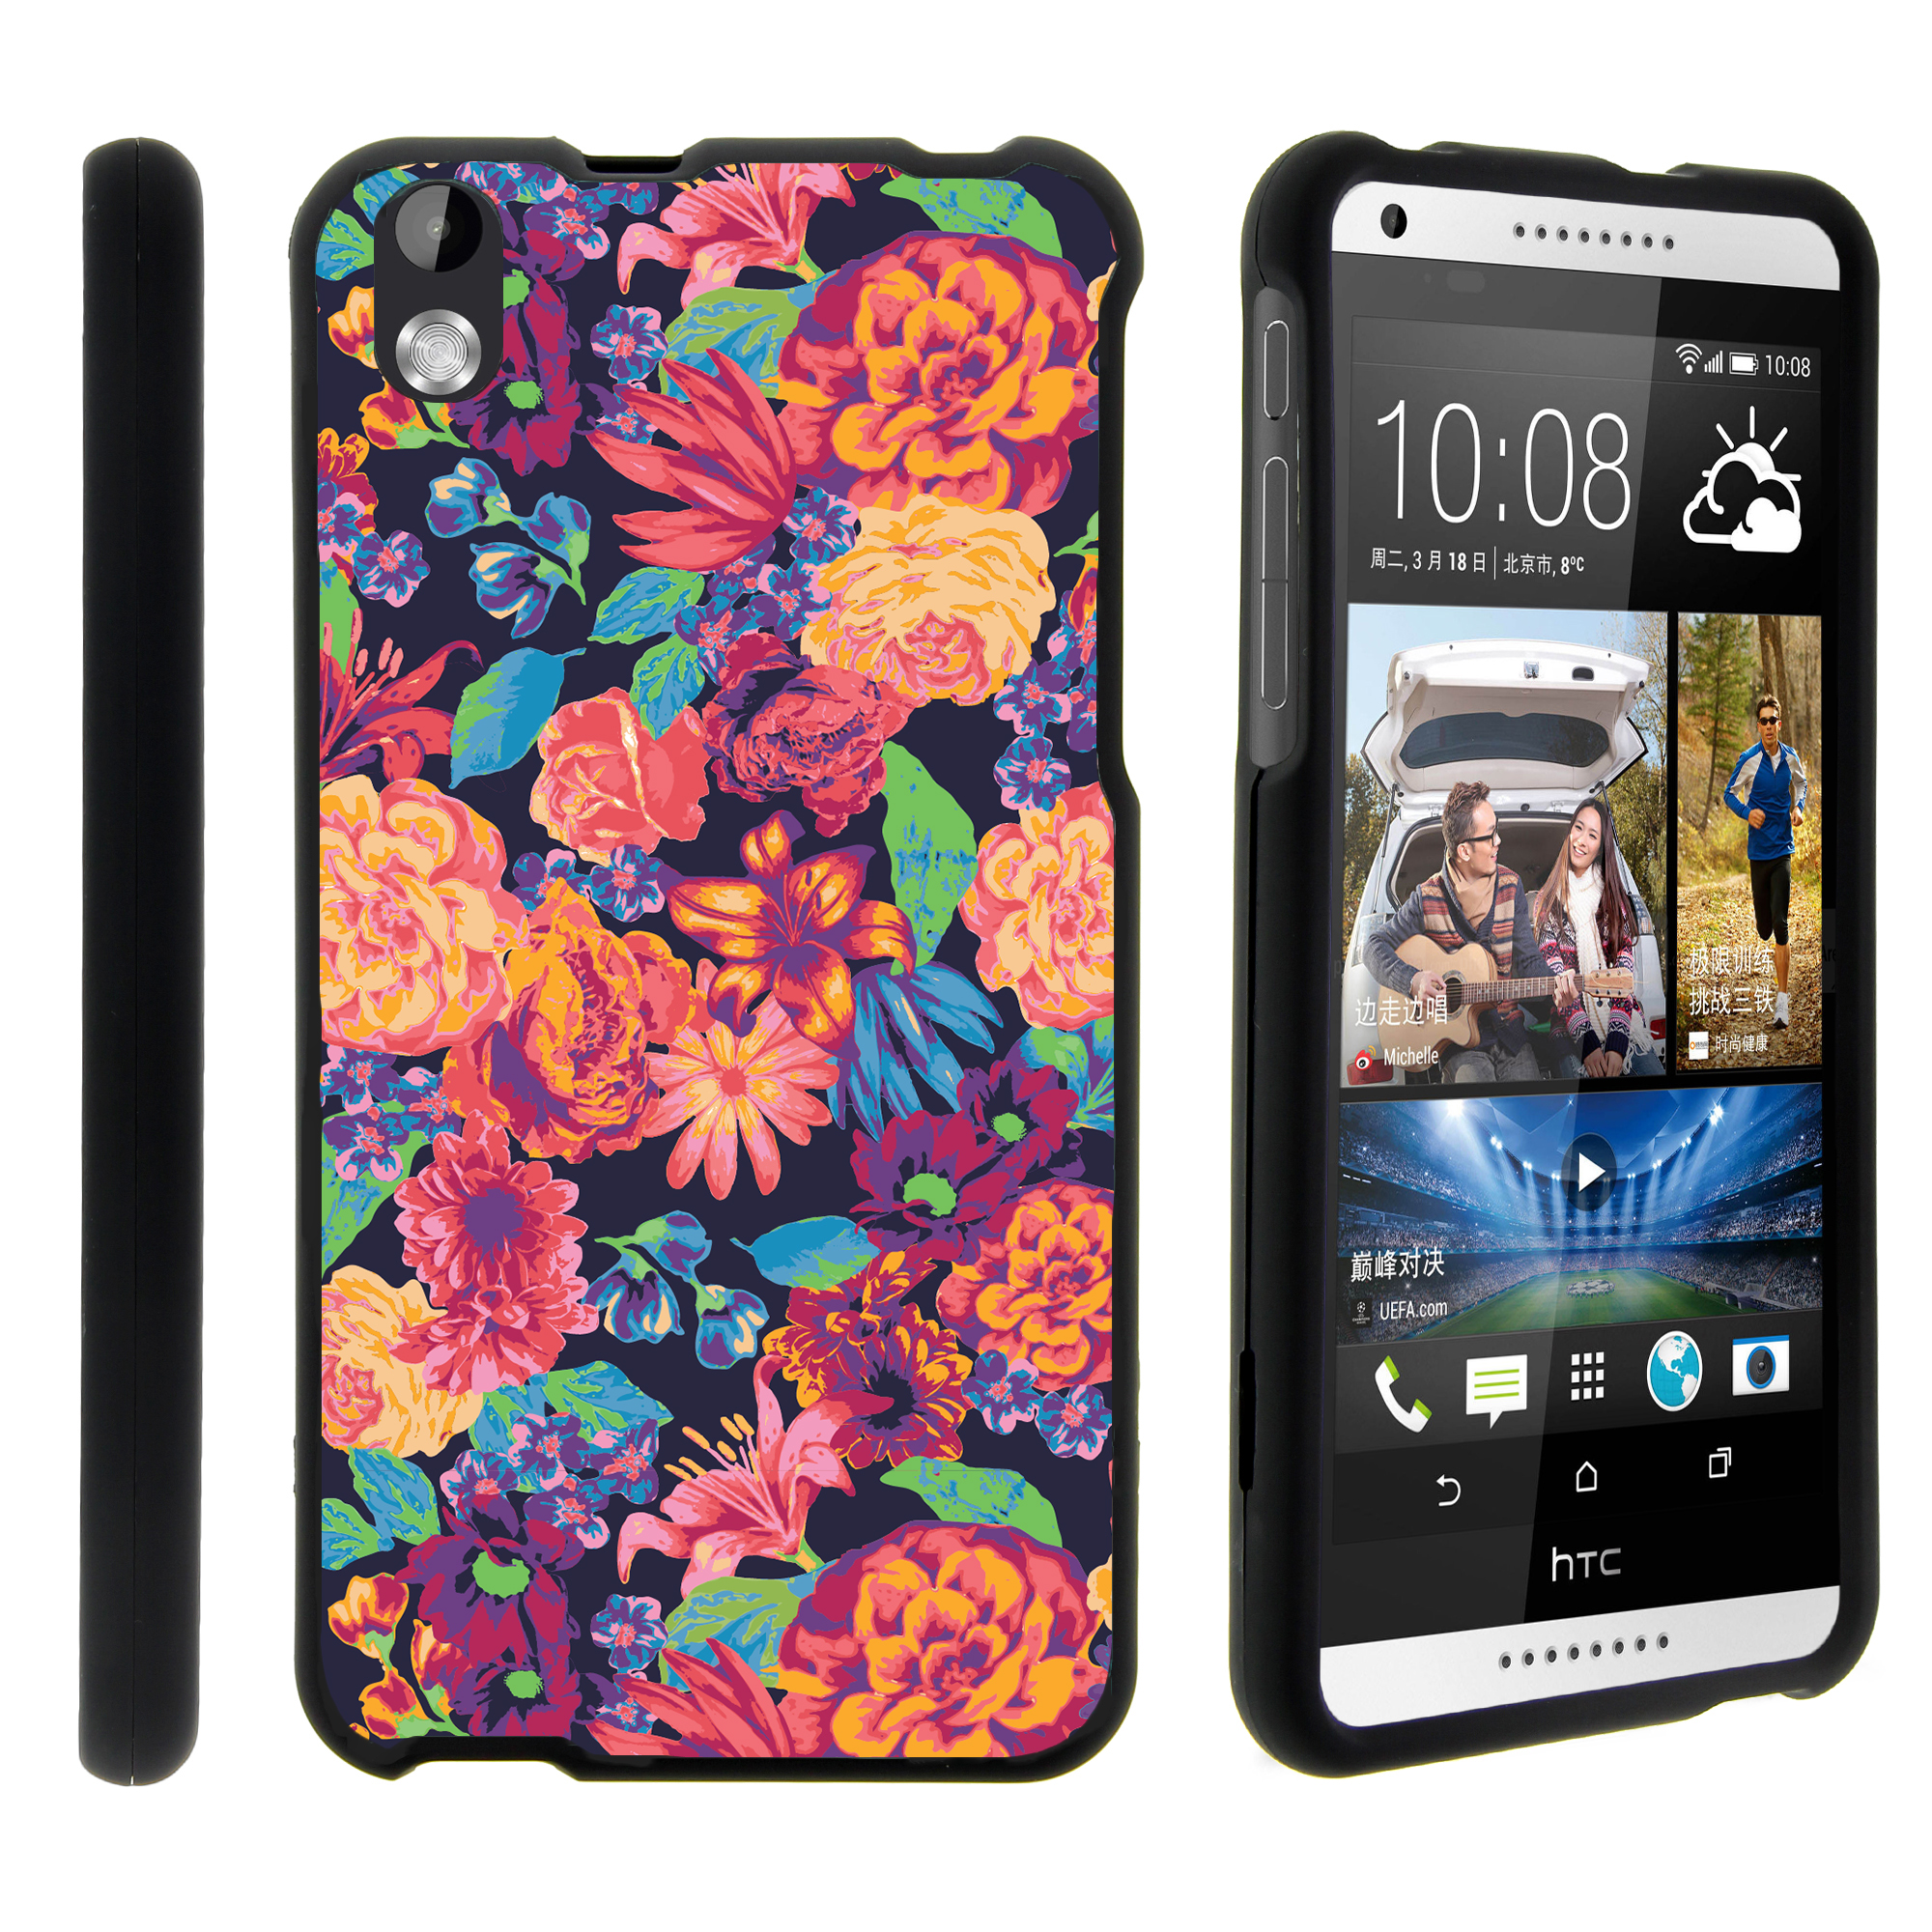 HTC Desire 816, [SNAP SHELL][Matte Black] 2 Piece Snap On Rubberized Hard Plastic Cell Phone Case with Exclusive Art - Floral Dream